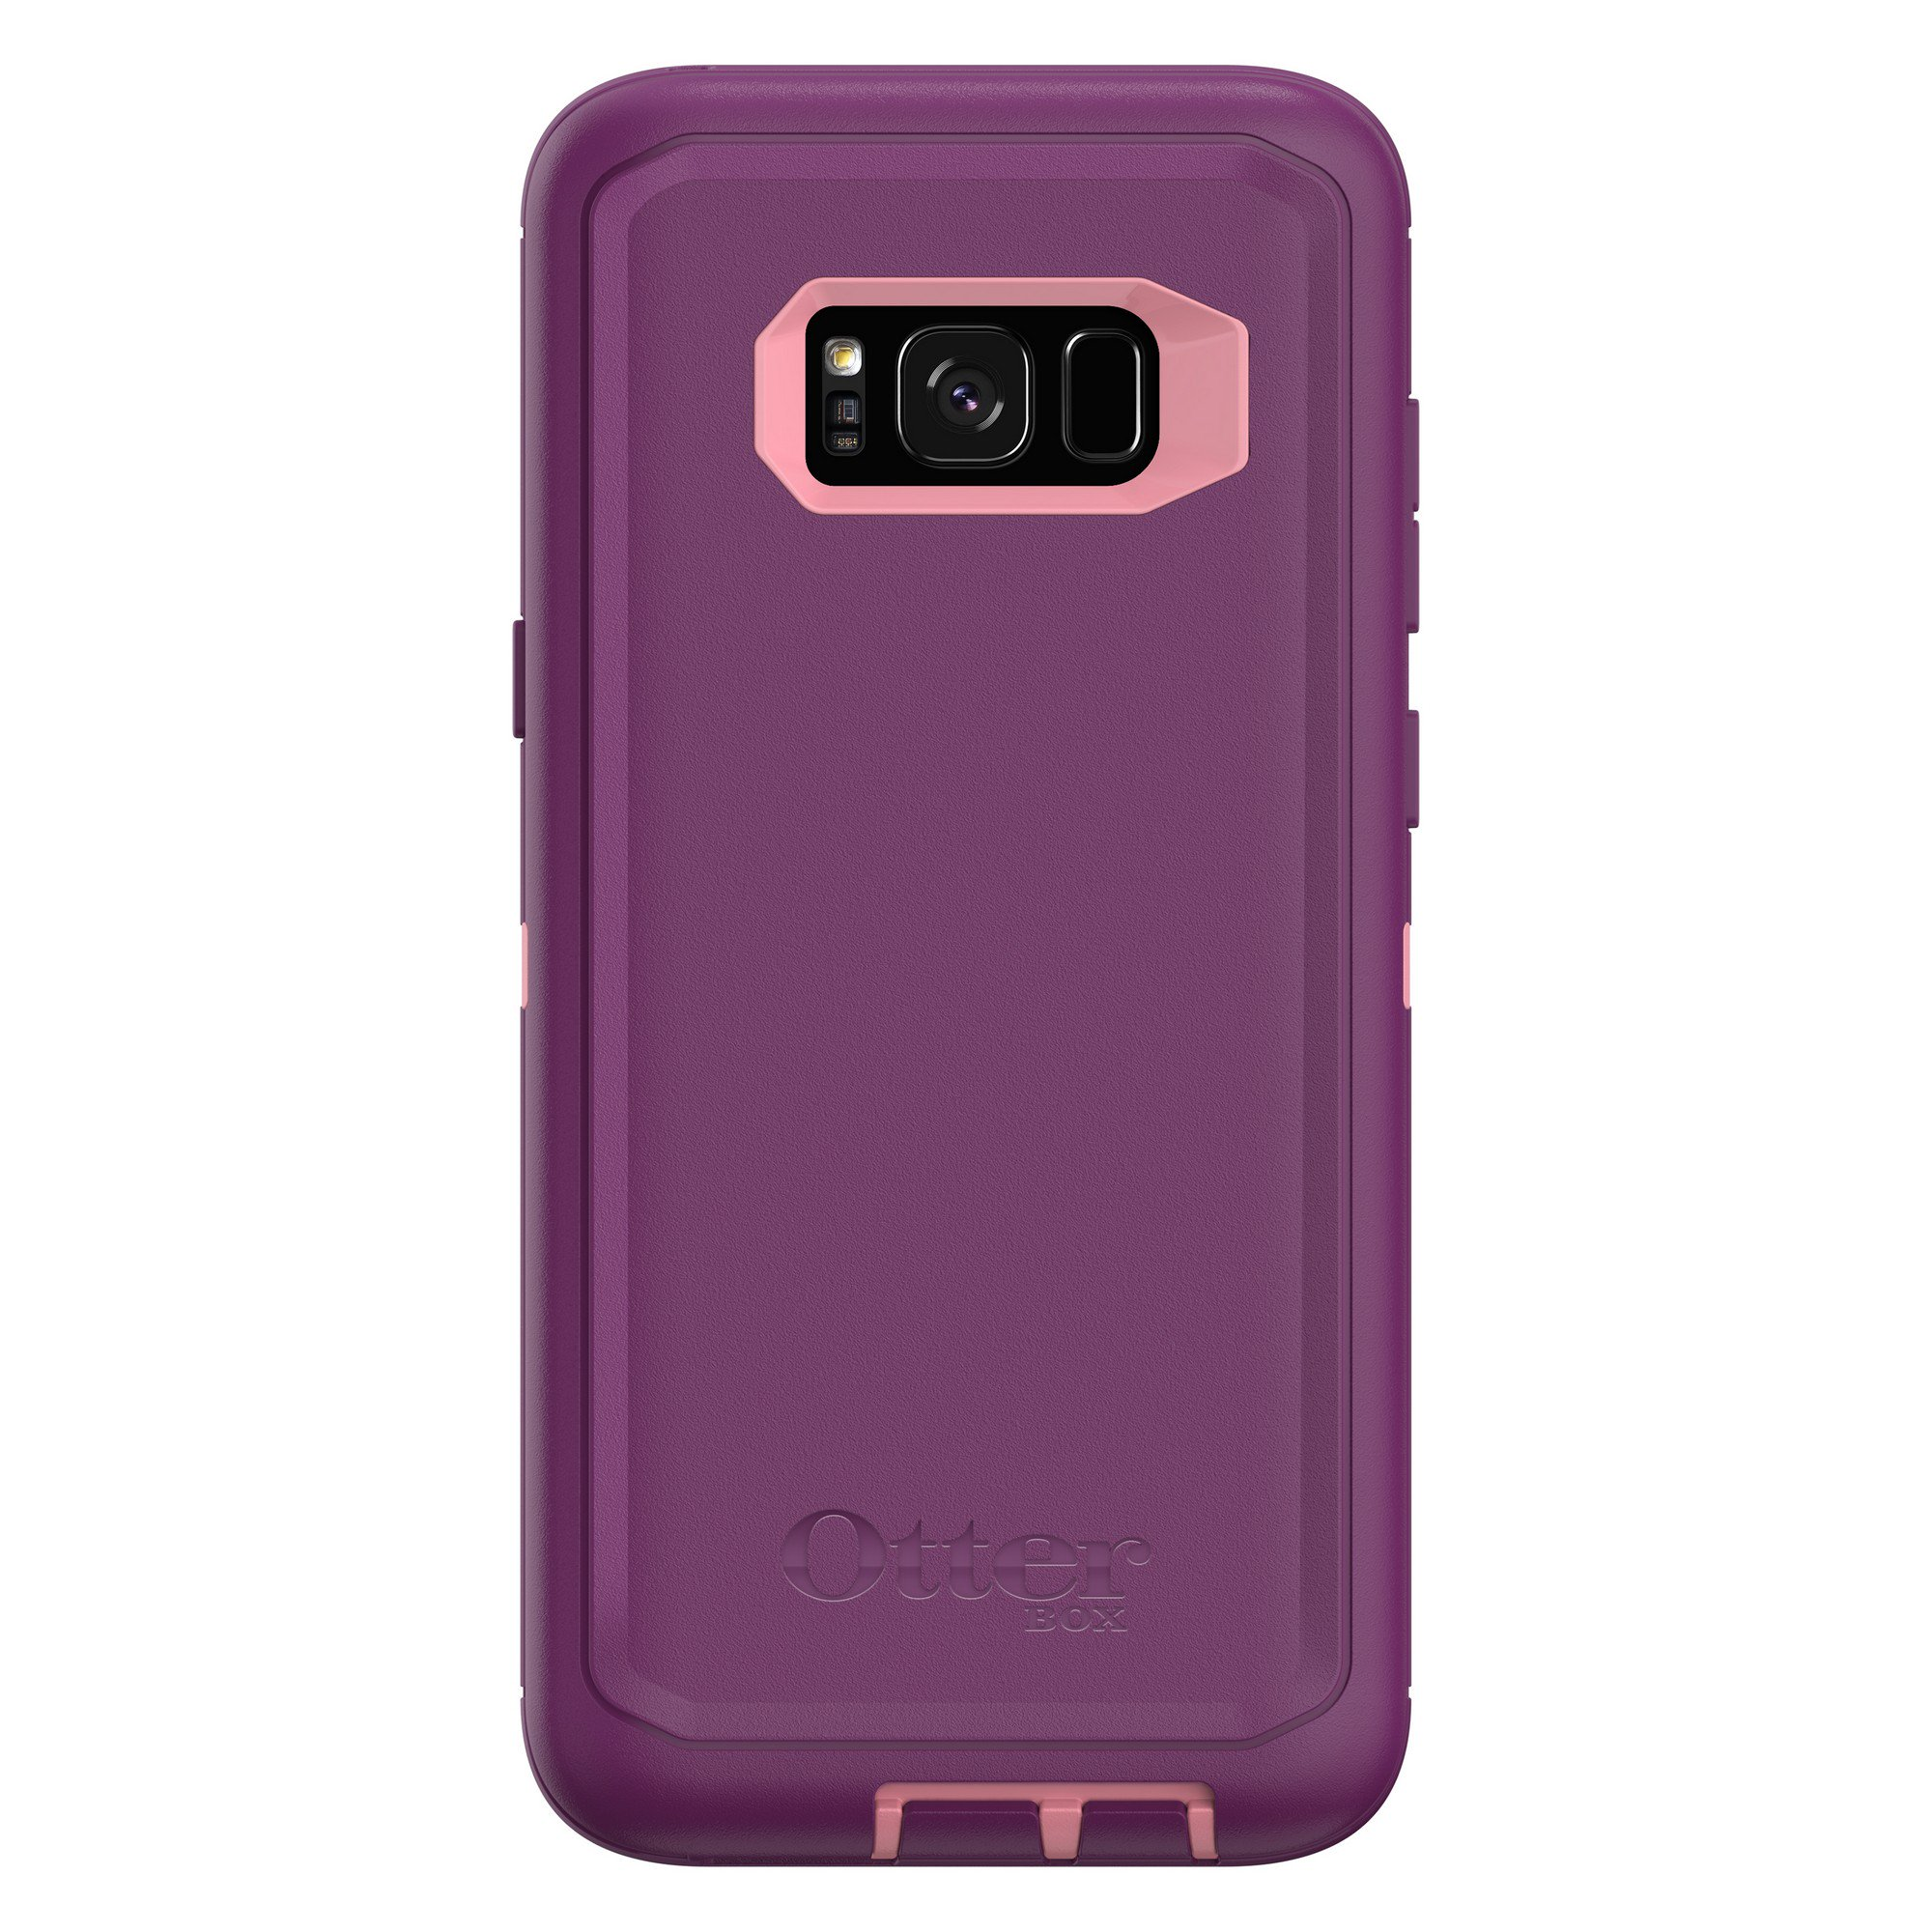 classic fit 19715 c4f3c Otterbox Samsung Galaxy S8 Plus Dark Pink/Purple (Vinyasa) Defender series  case - 77-54584